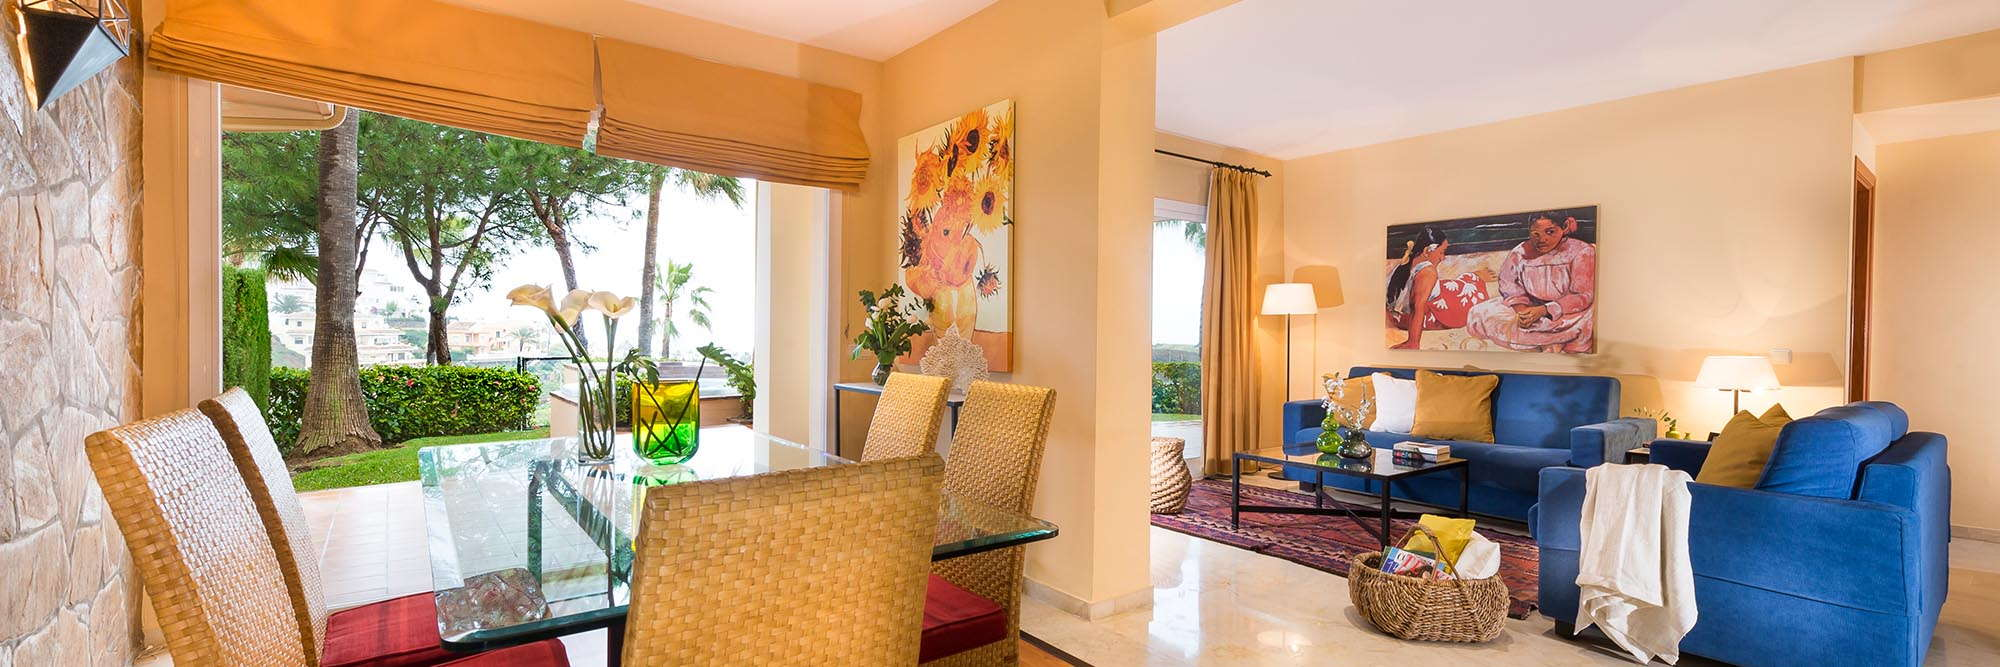 Accommodation At San Go Suites